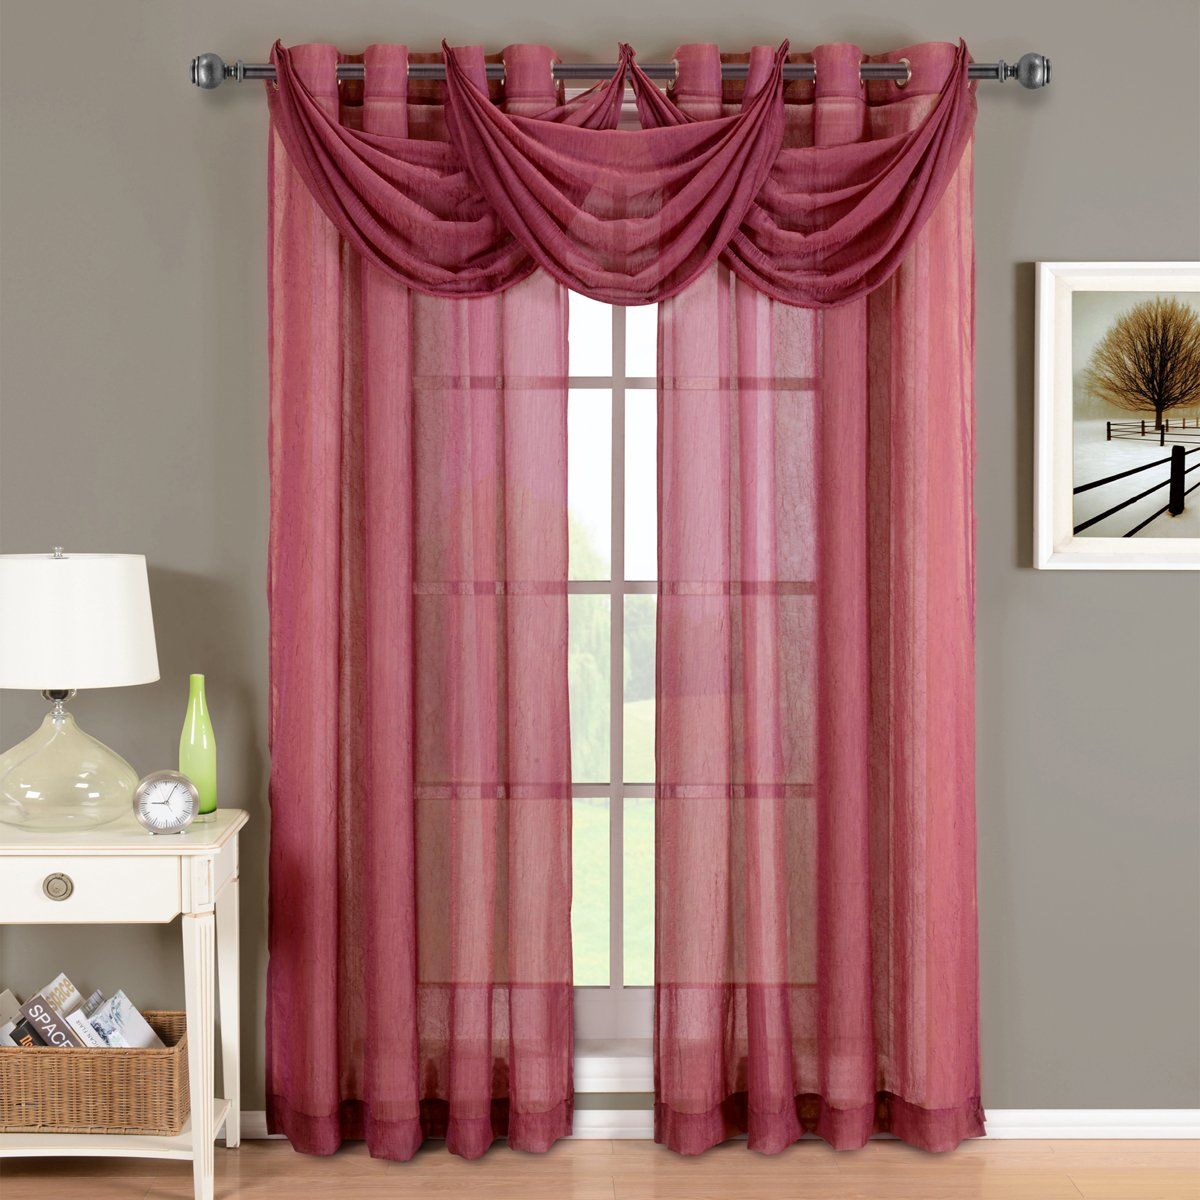 Abri Burgundy Grommet Crushed Sheer Curtain Panel, 50x84 inches, by Royal Hotel